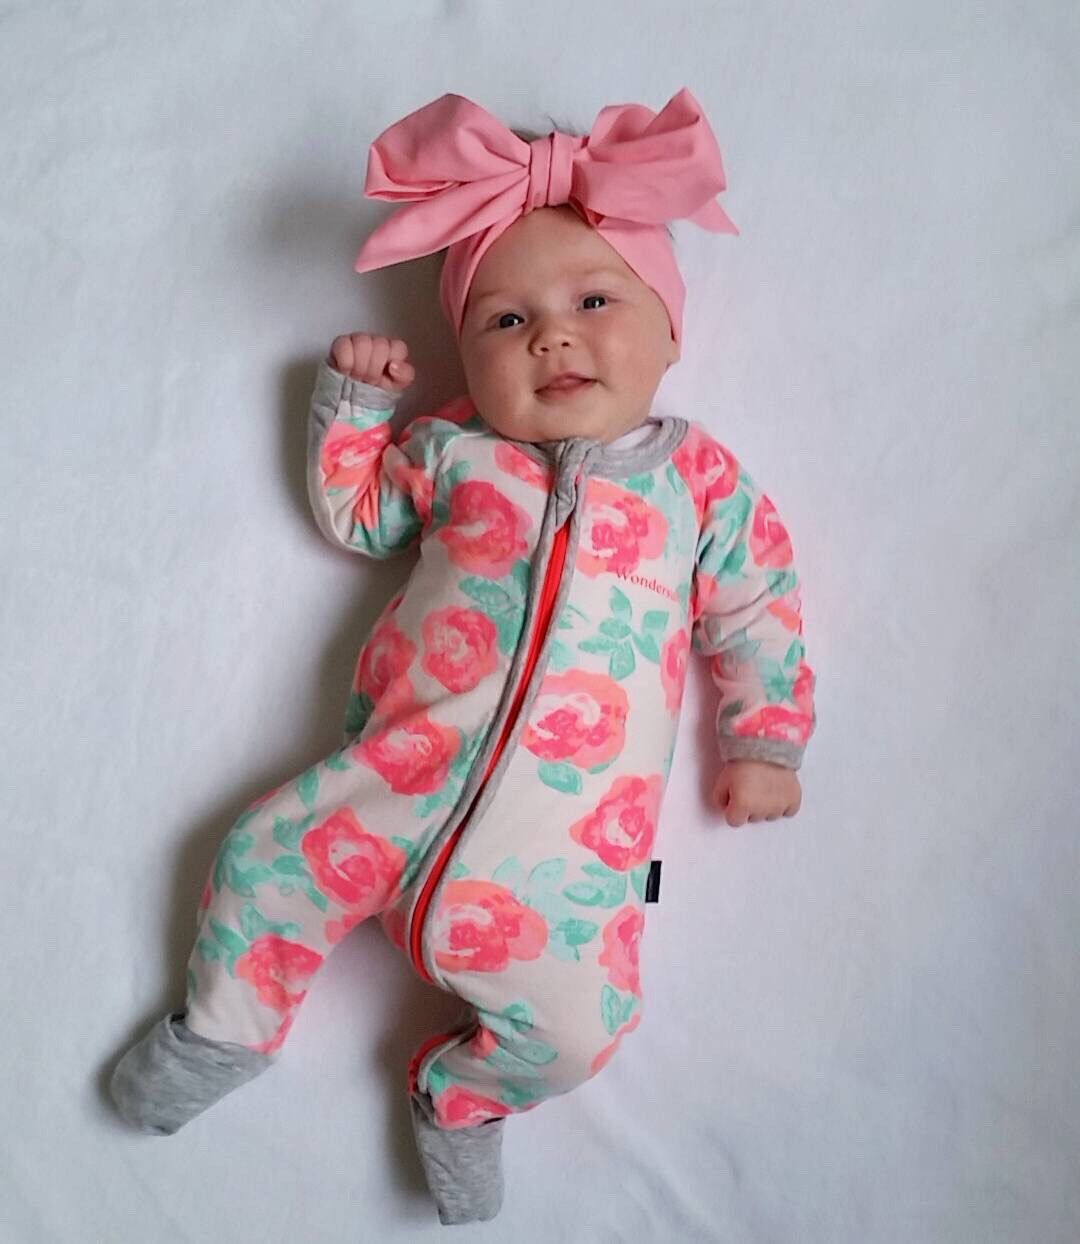 c0e609bdc Newborn Baby Rose One Piece Outfit Winter Fall Long Sleeve Romper ...